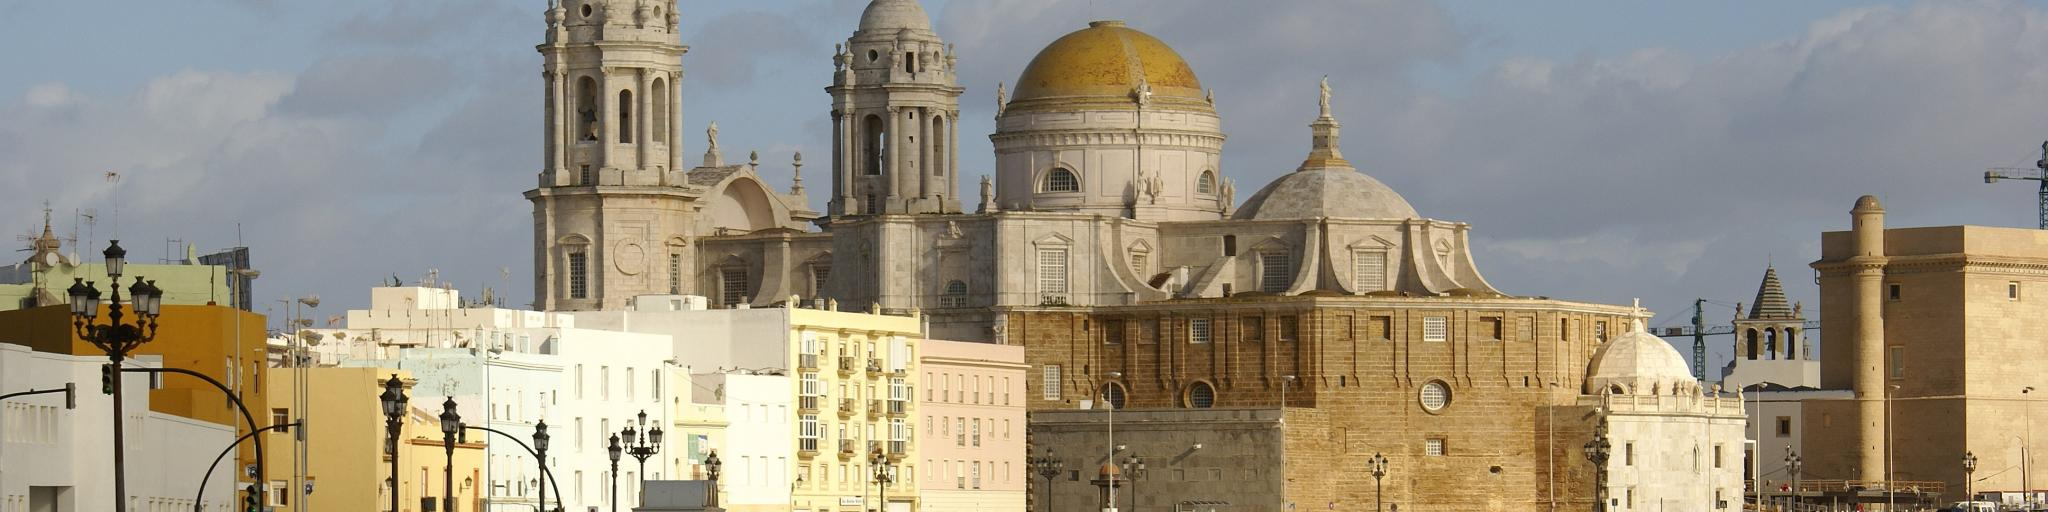 The imposing Cadiz Cathedral (Catedral de Cadiz) and its distinctive gold dome and bell tower